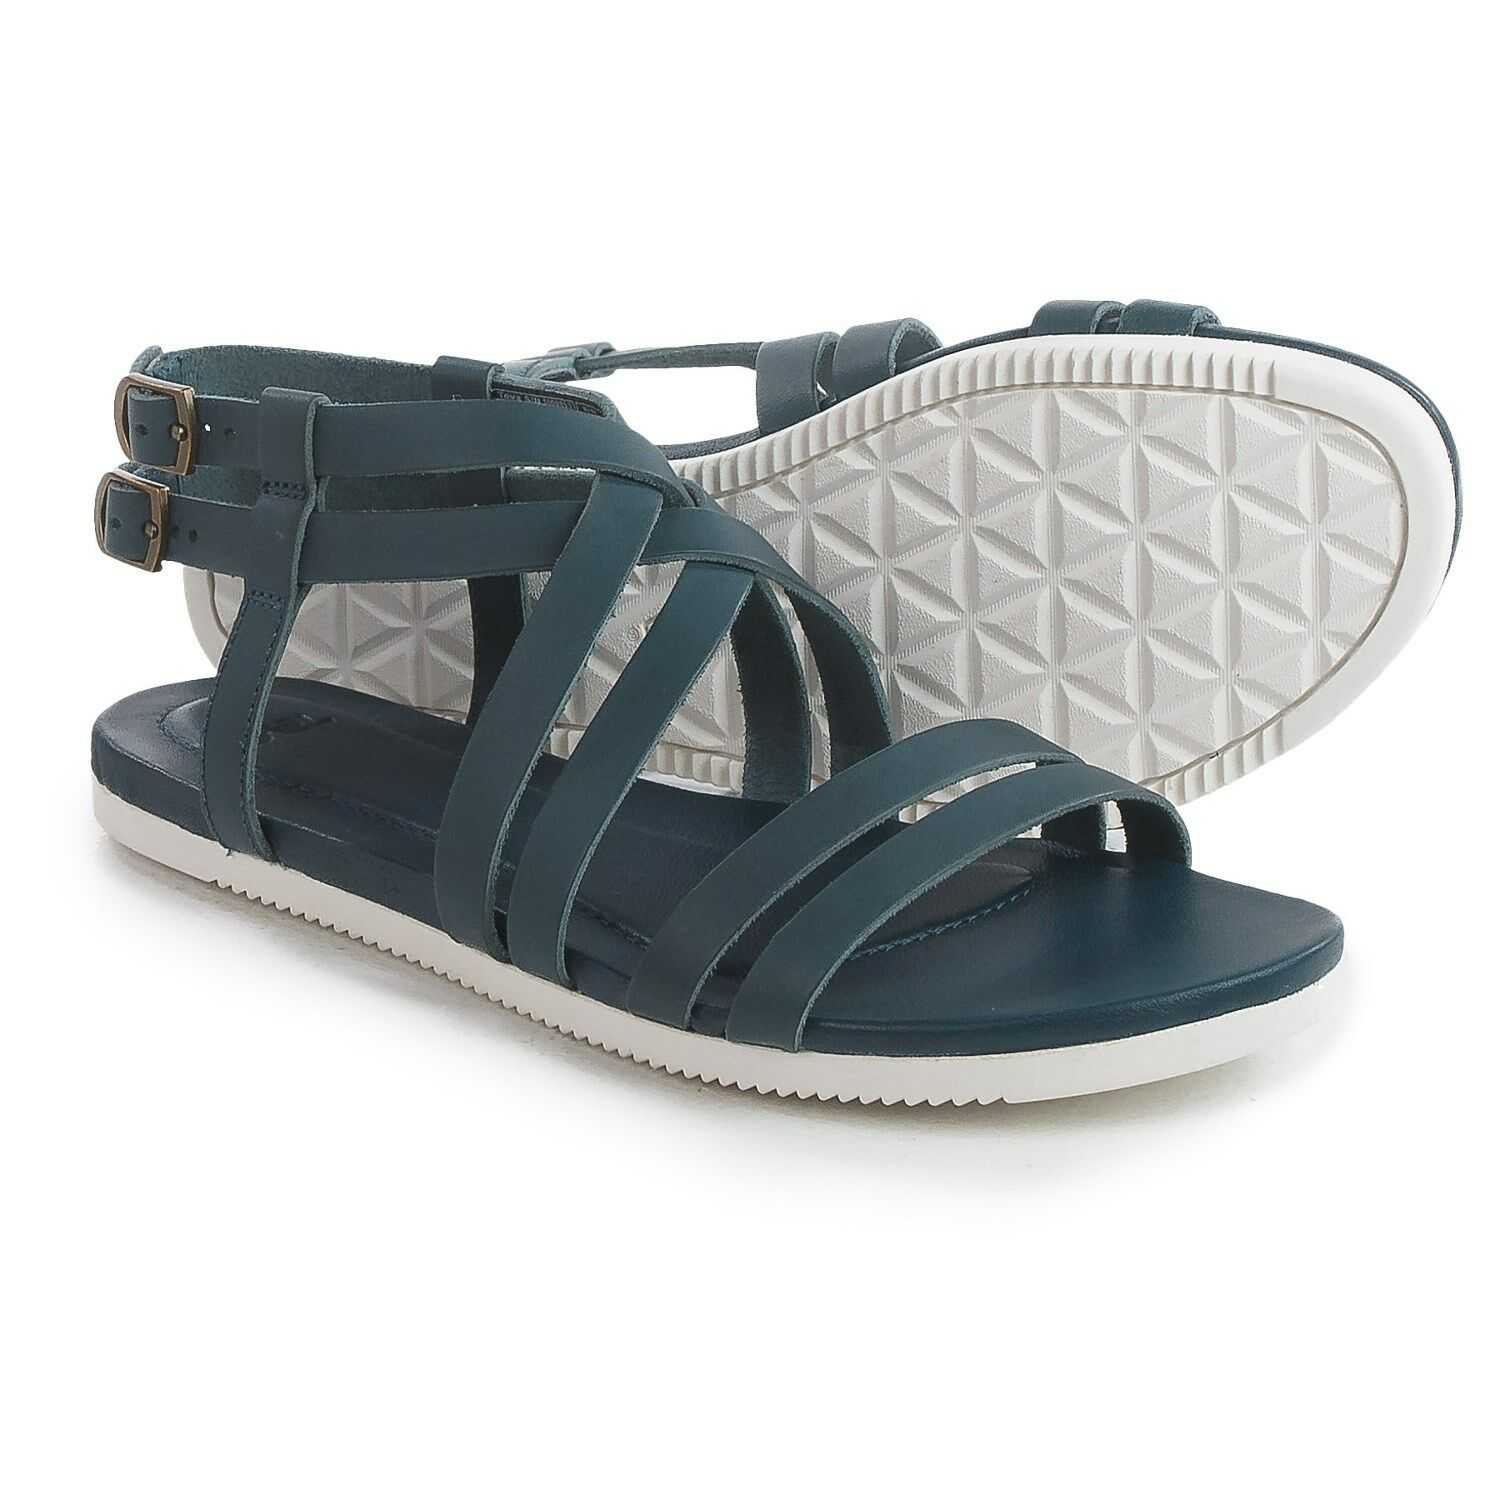 NEW TEVA 8 SANDAL FLIP FLOPS SHOES Leather $90 Retail Avalina Crossover Blue